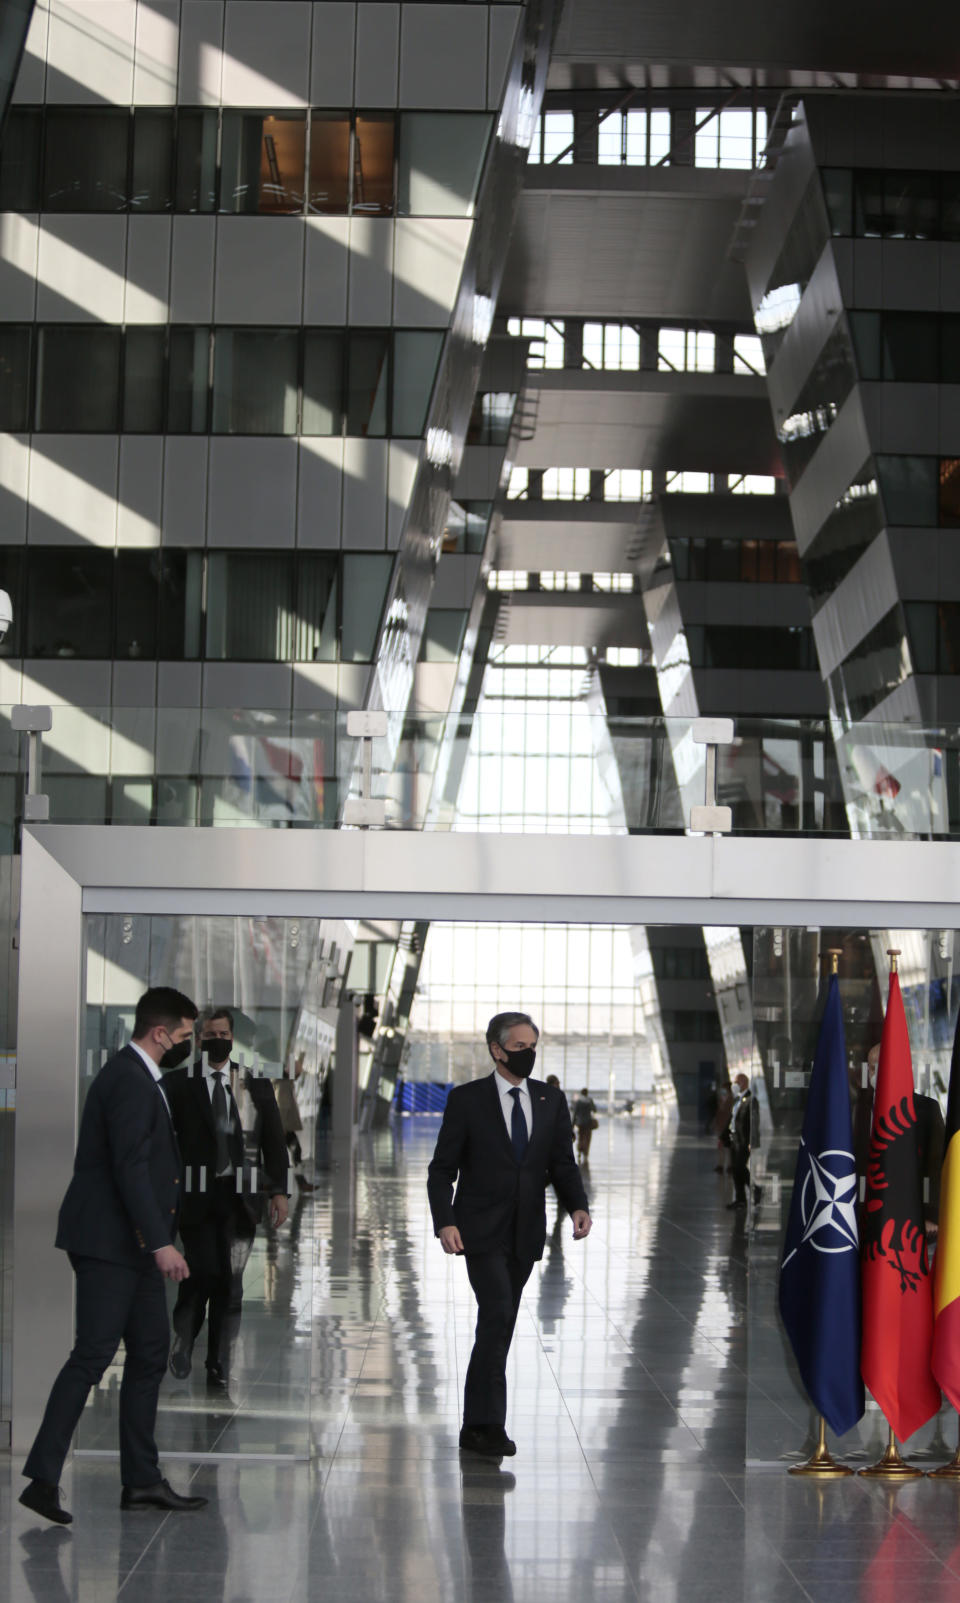 U.S. Secretary of State Antony Blinken arrives to deliver an address after a meeting of NATO foreign ministers at NATO headquarters in Brussels on Wednesday, March 24, 2021. (AP Photo/Virginia Mayo, Pool)